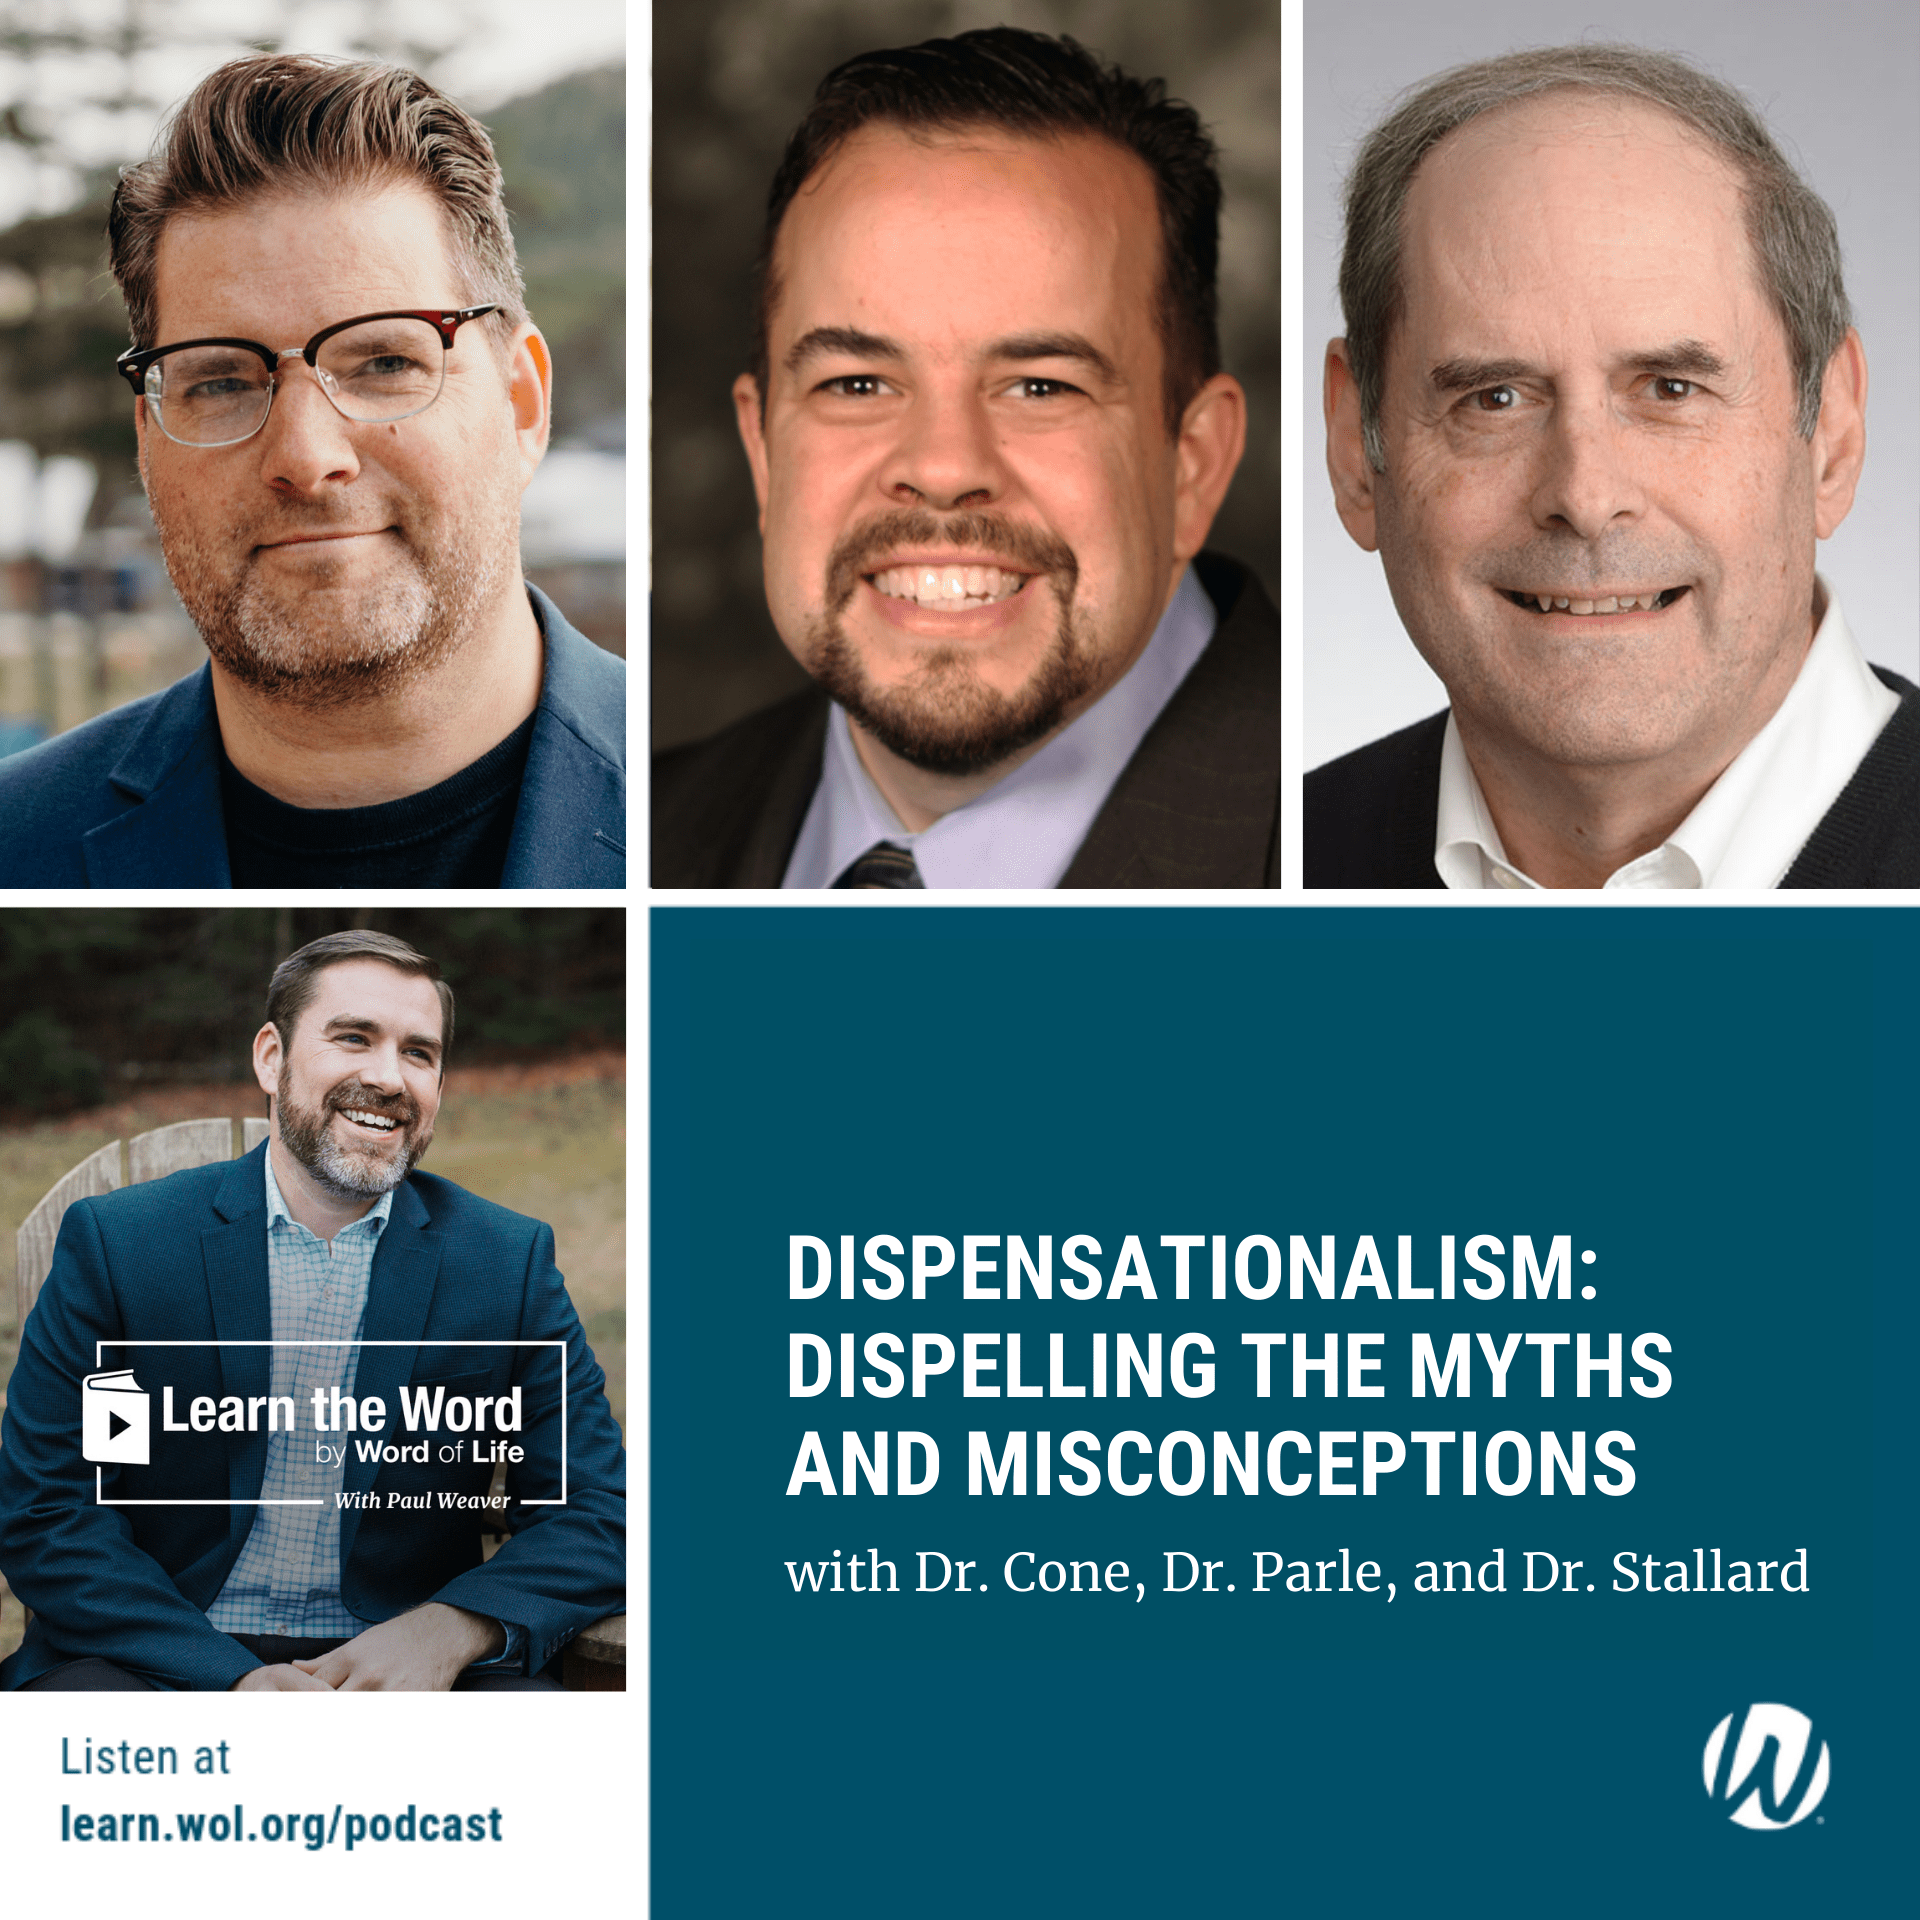 LTW163: Dispensationalism: Dispelling the Myths and Misconceptions - with Dr. Cone, Dr. Parle, and Dr. Stallard